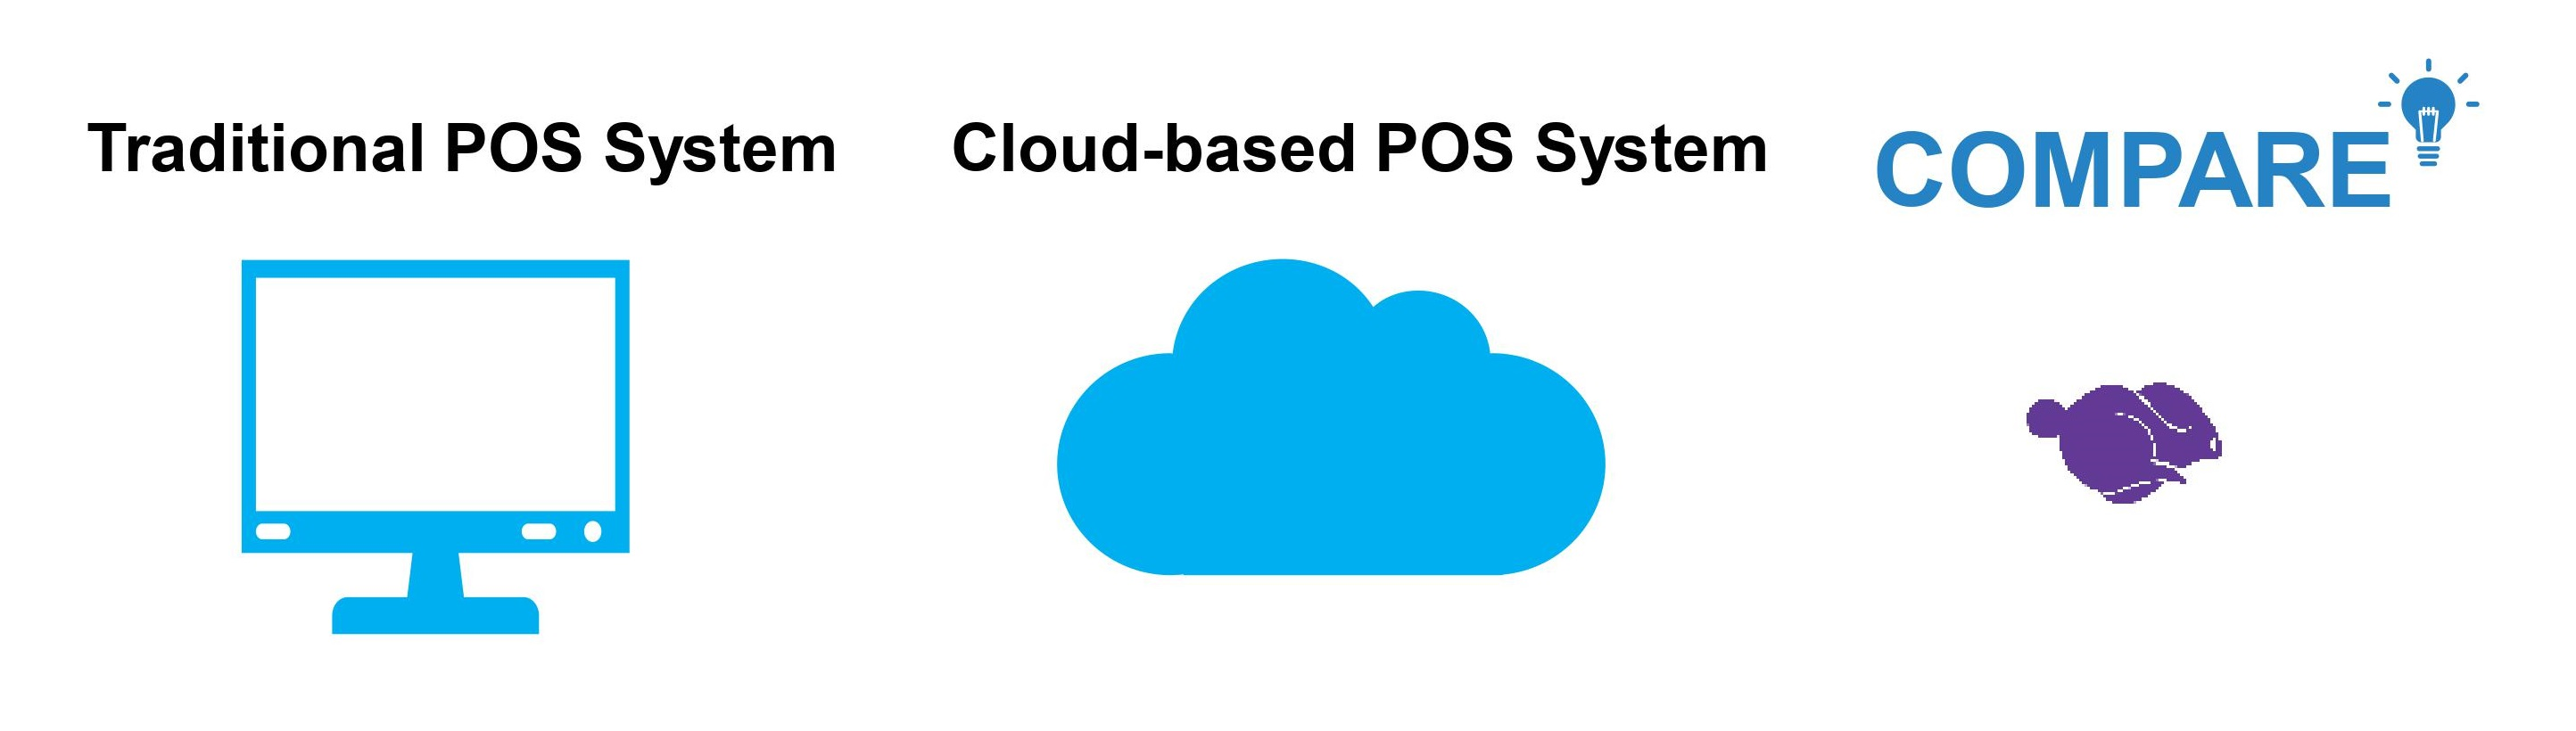 Compare Traditional POS and Cloud-Based POS